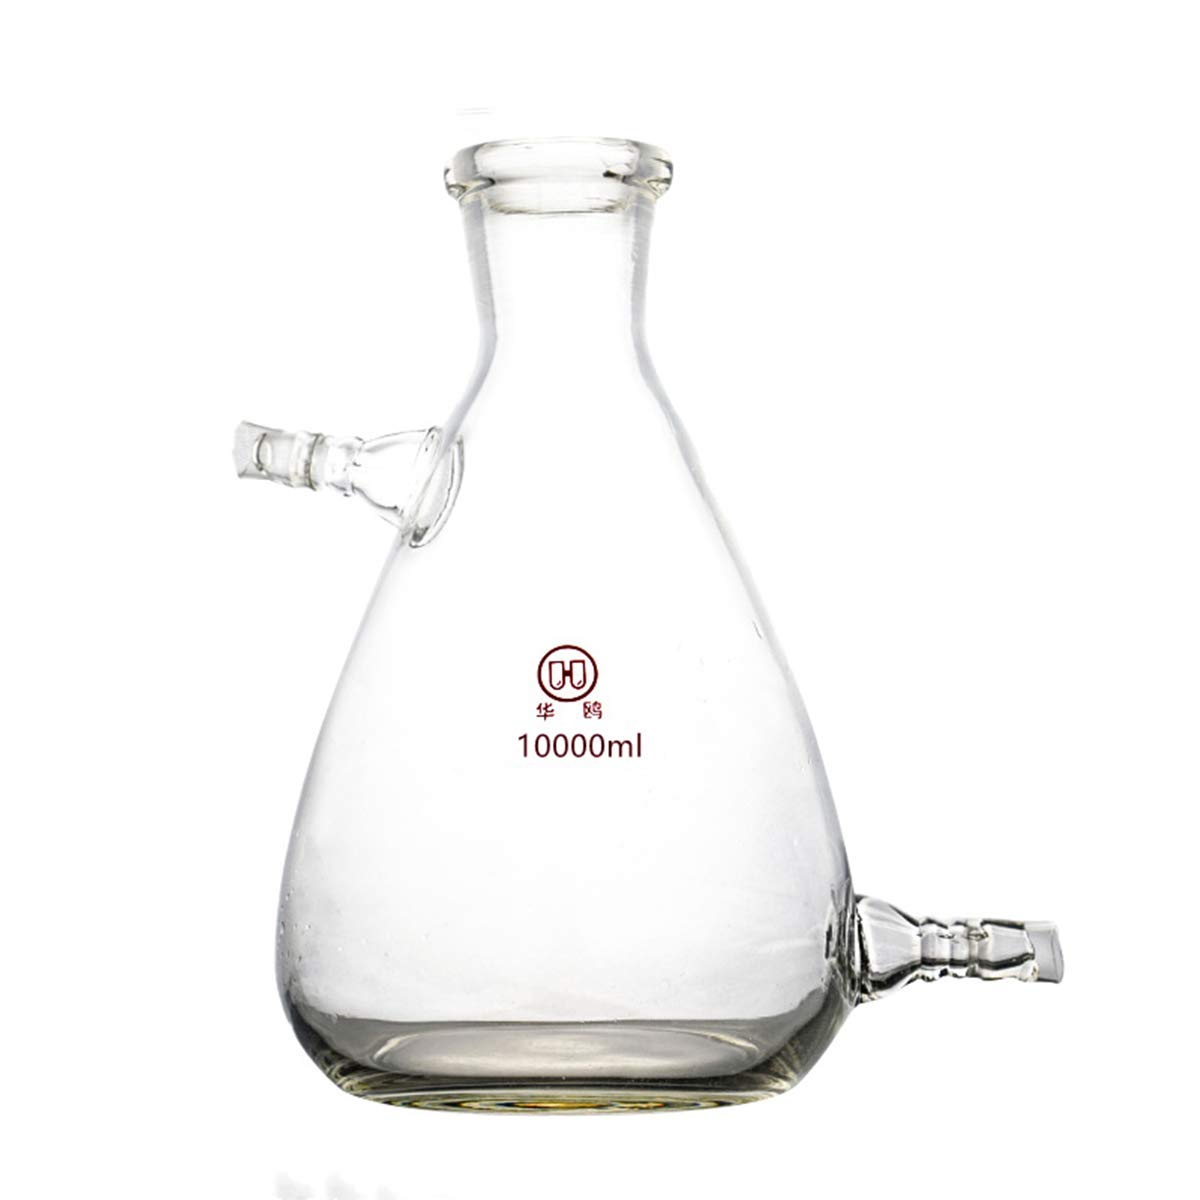 Deschem Glass Filtering Erlenmeyer Flask with Two Suction Vacuum Adapter Lab Filtration Bottle